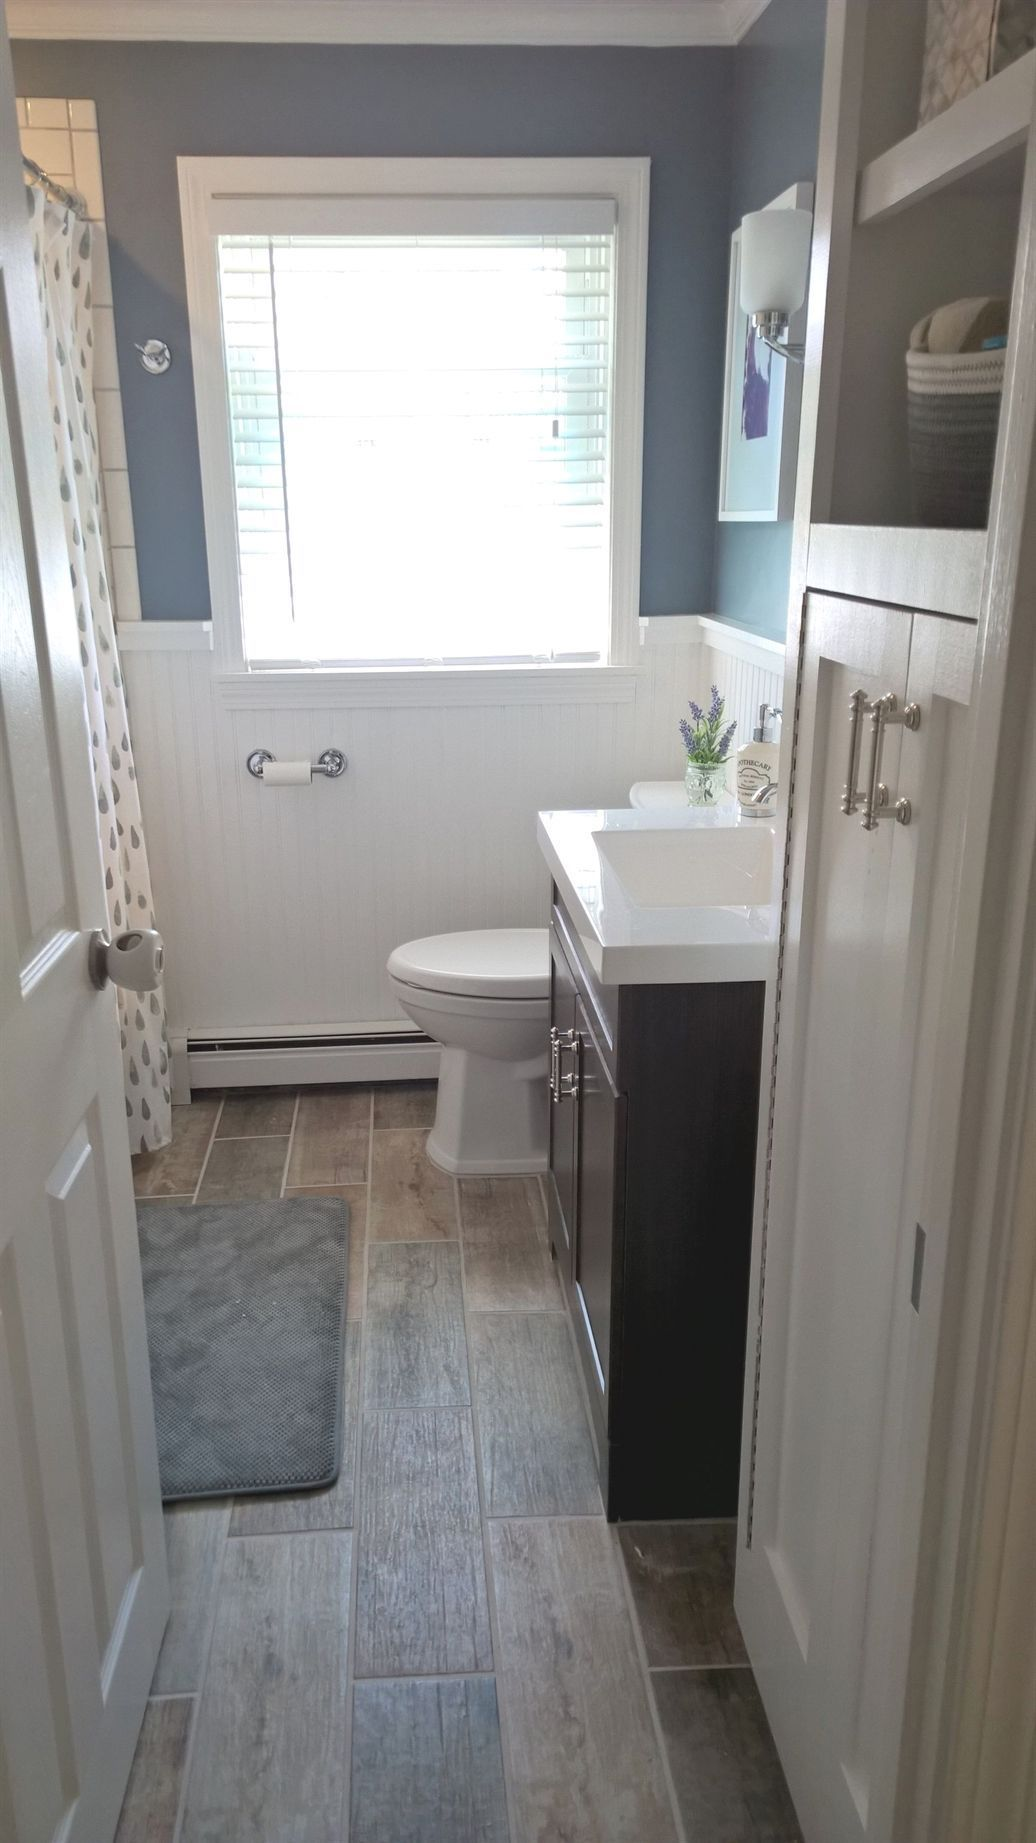 15 Bathroom Remodel Ideas | Remodel Your Bathroom with Inexpensively